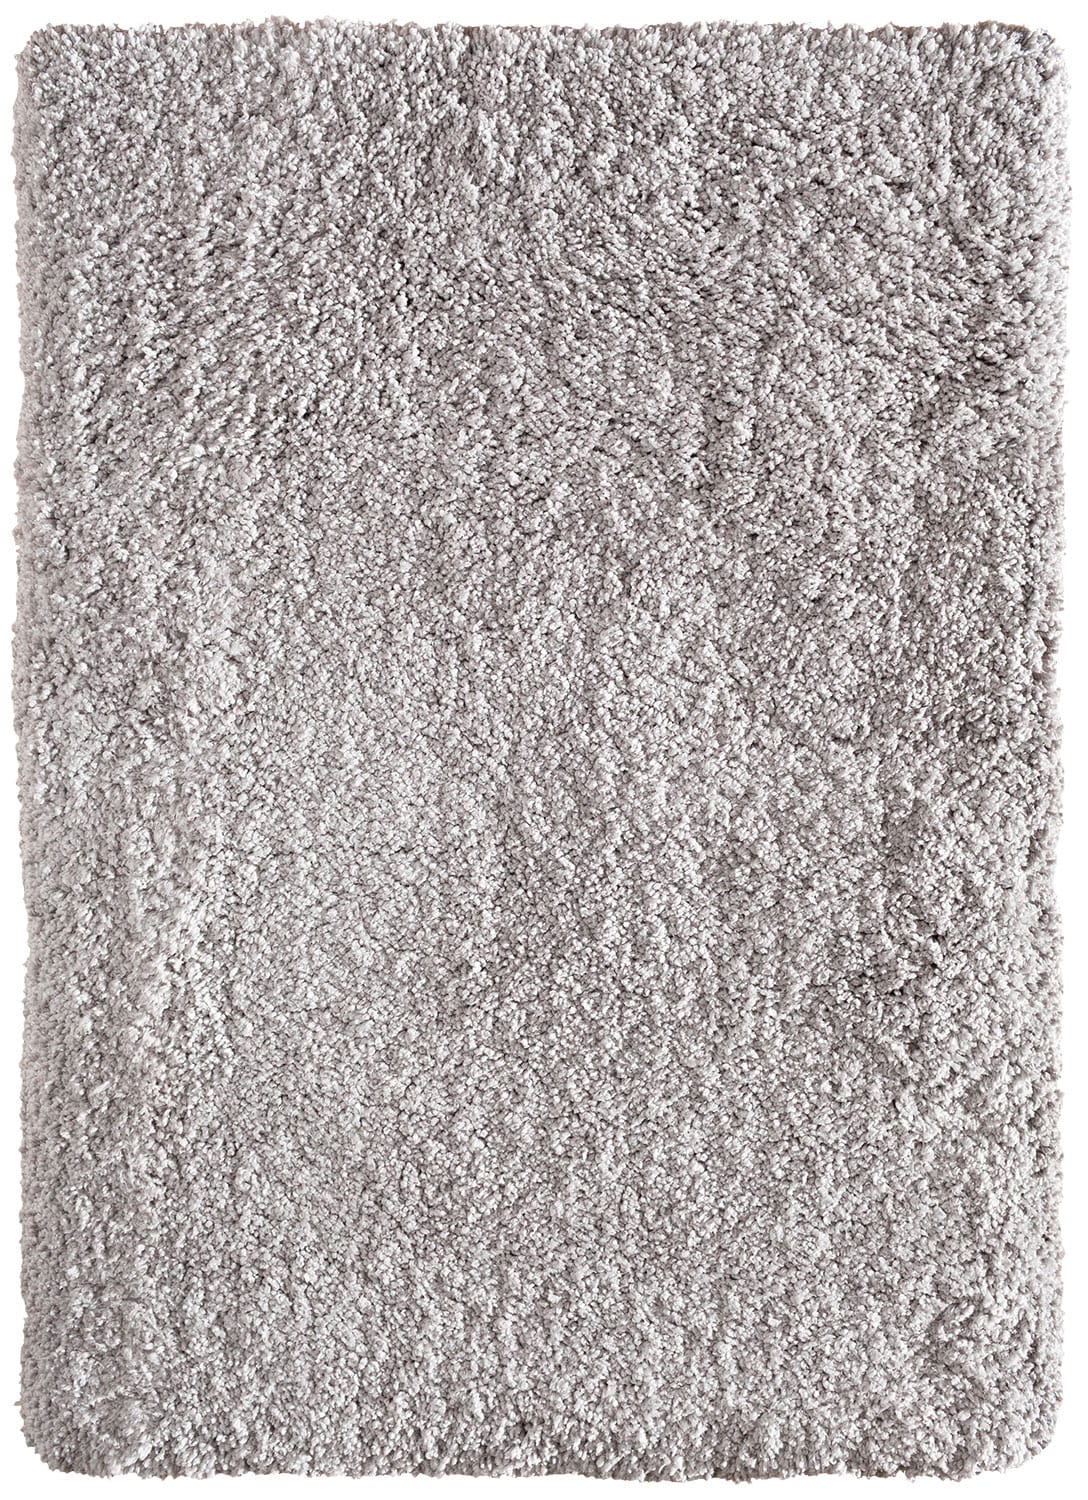 Alpaca Light Grey Area Rug – 8' x 10'